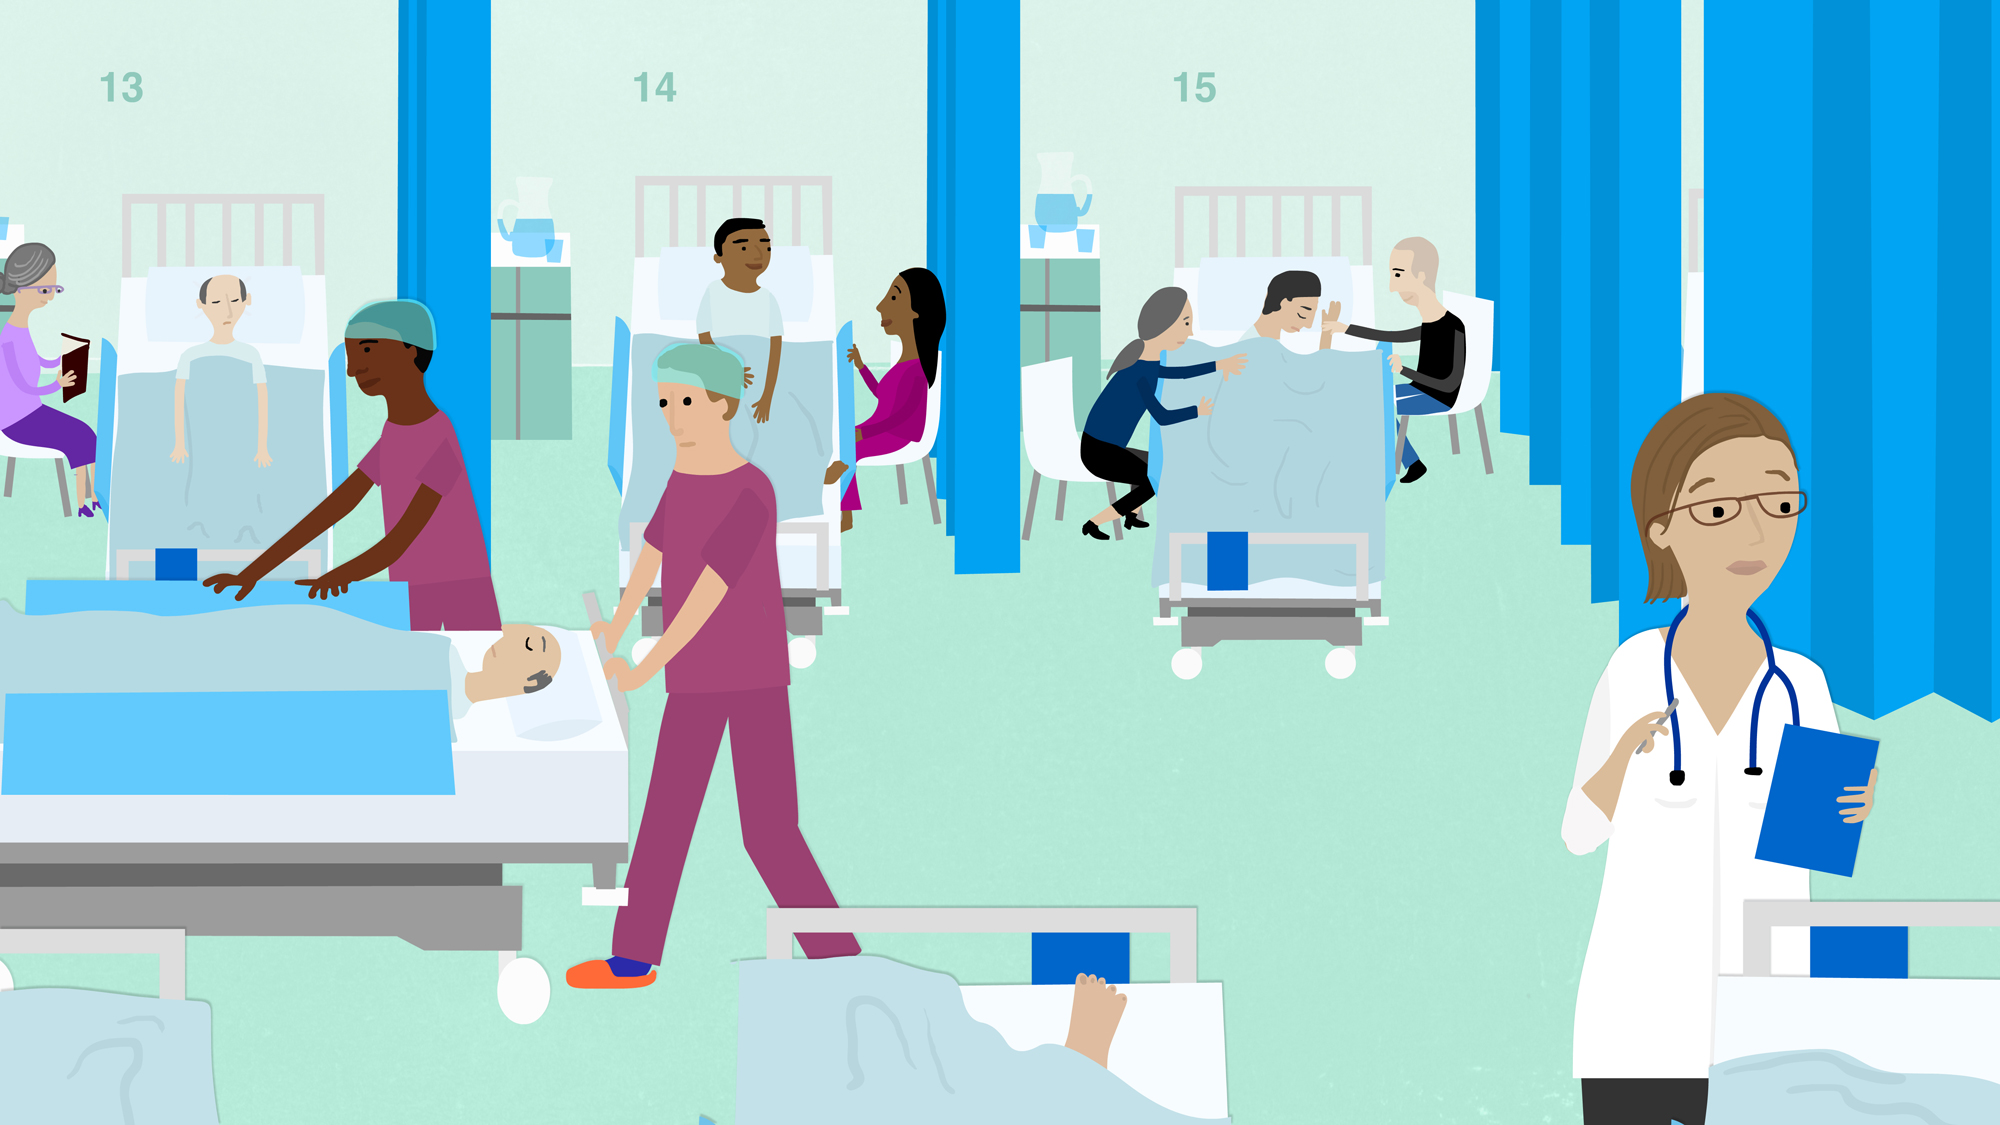 Cartoon of a busy hospital ward